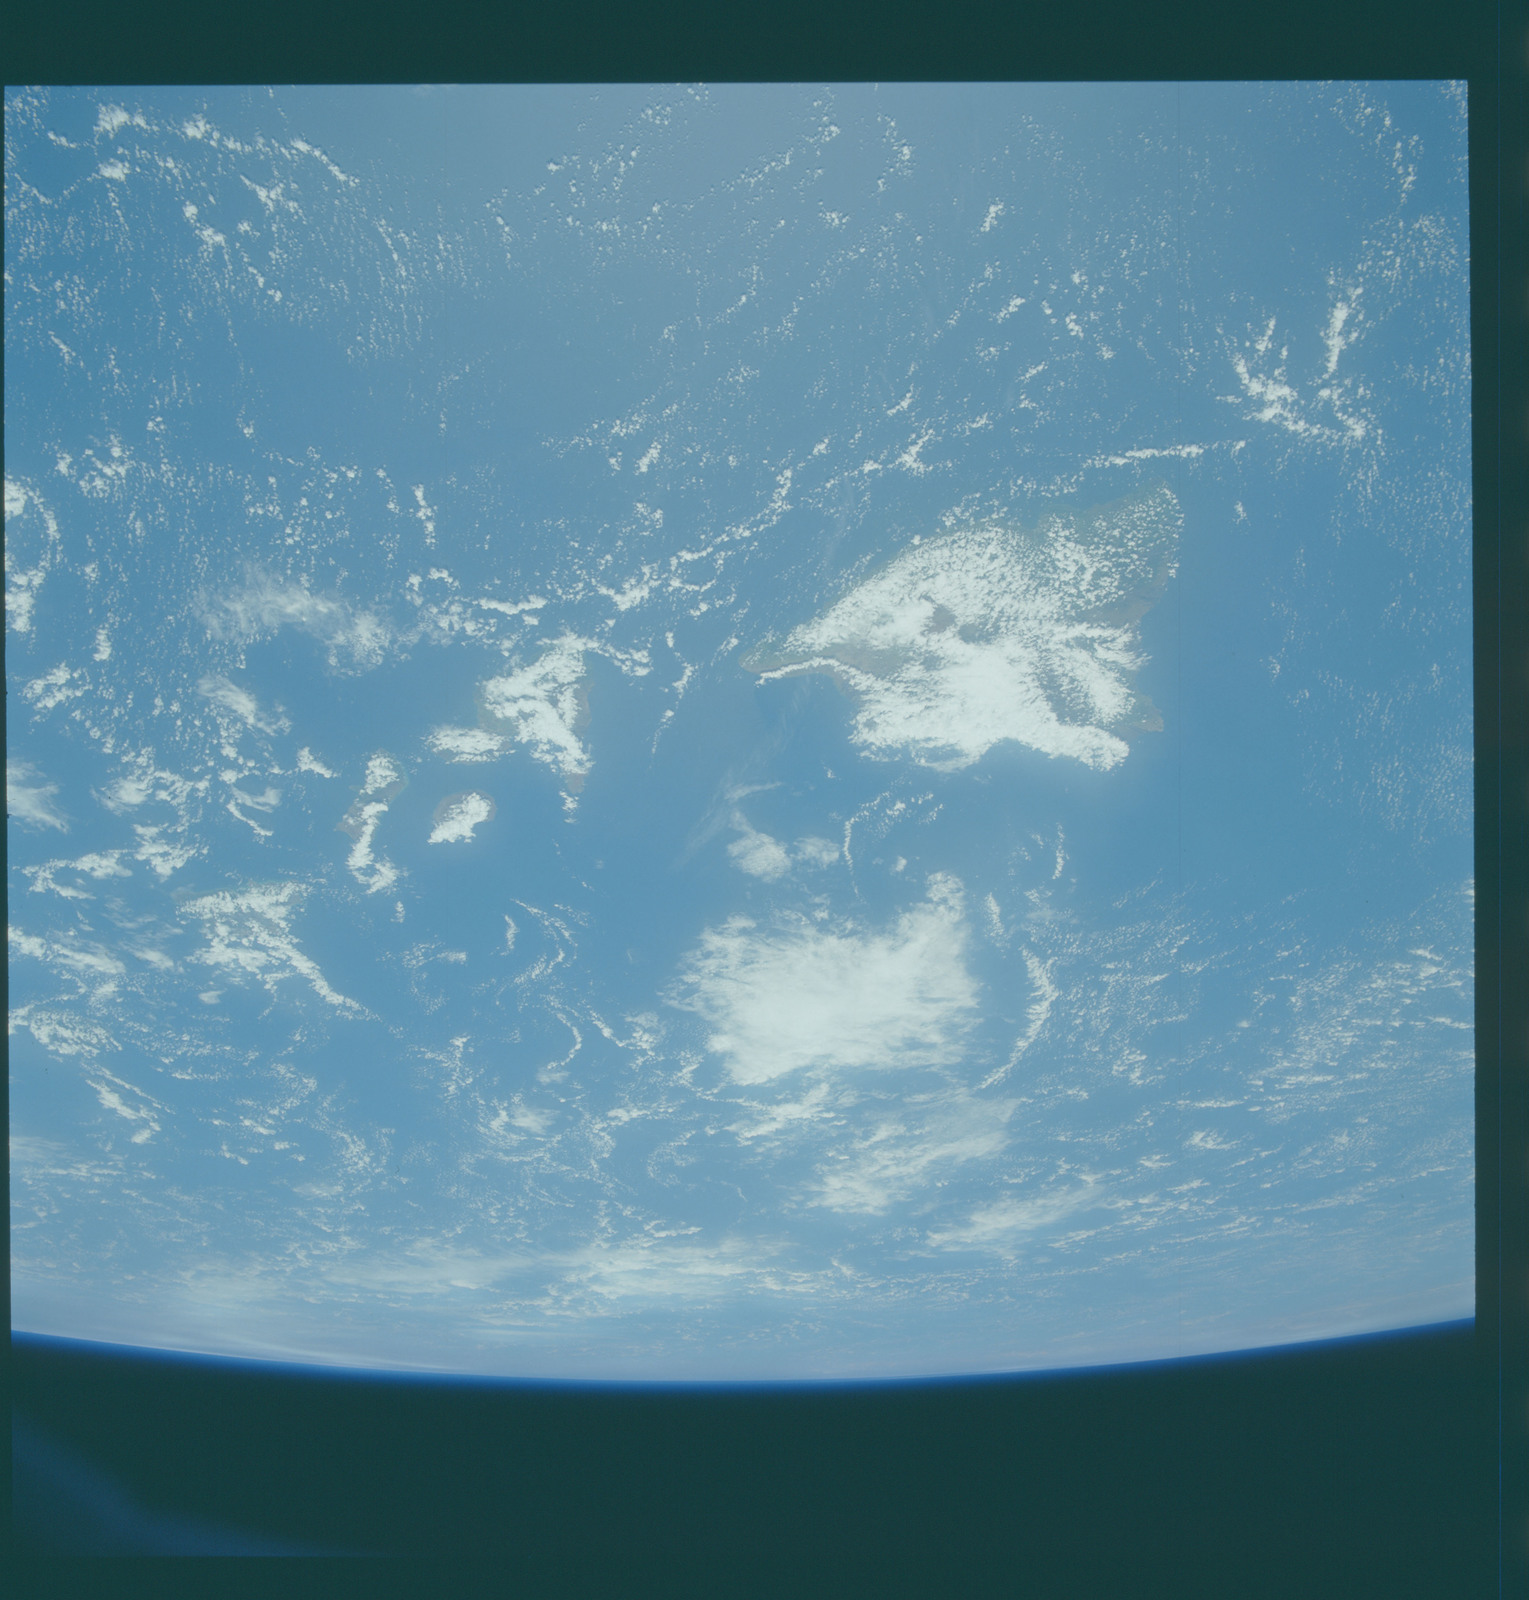 S43-601-055 - STS-043 - STS-43 earth observations